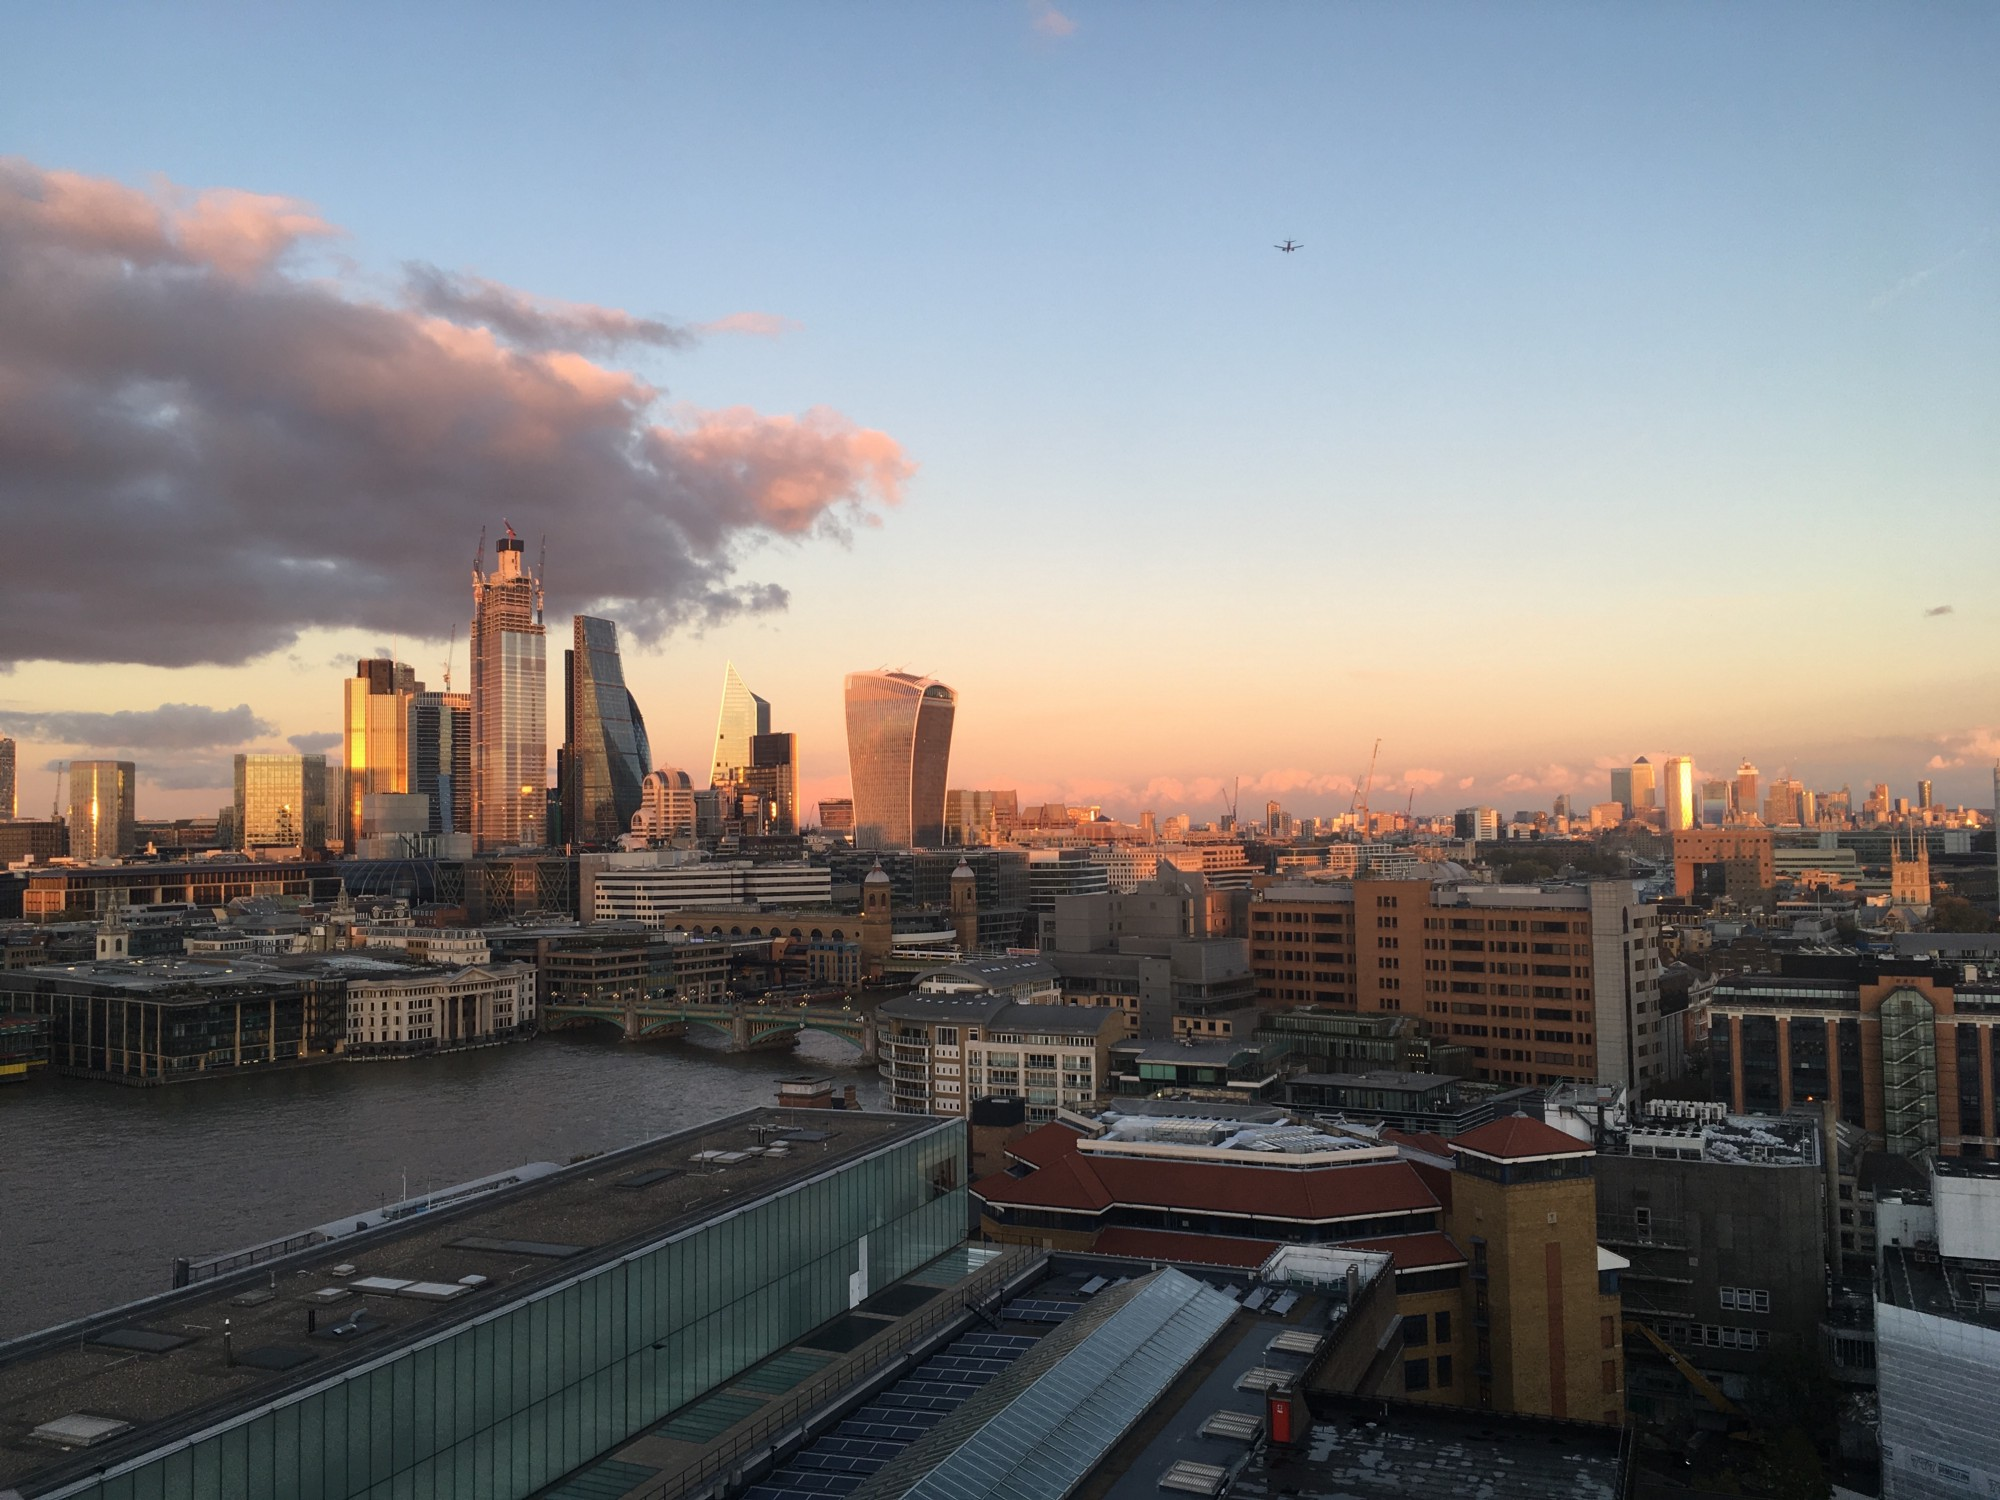 The City of London, viewed from the south bank of the River Thames.